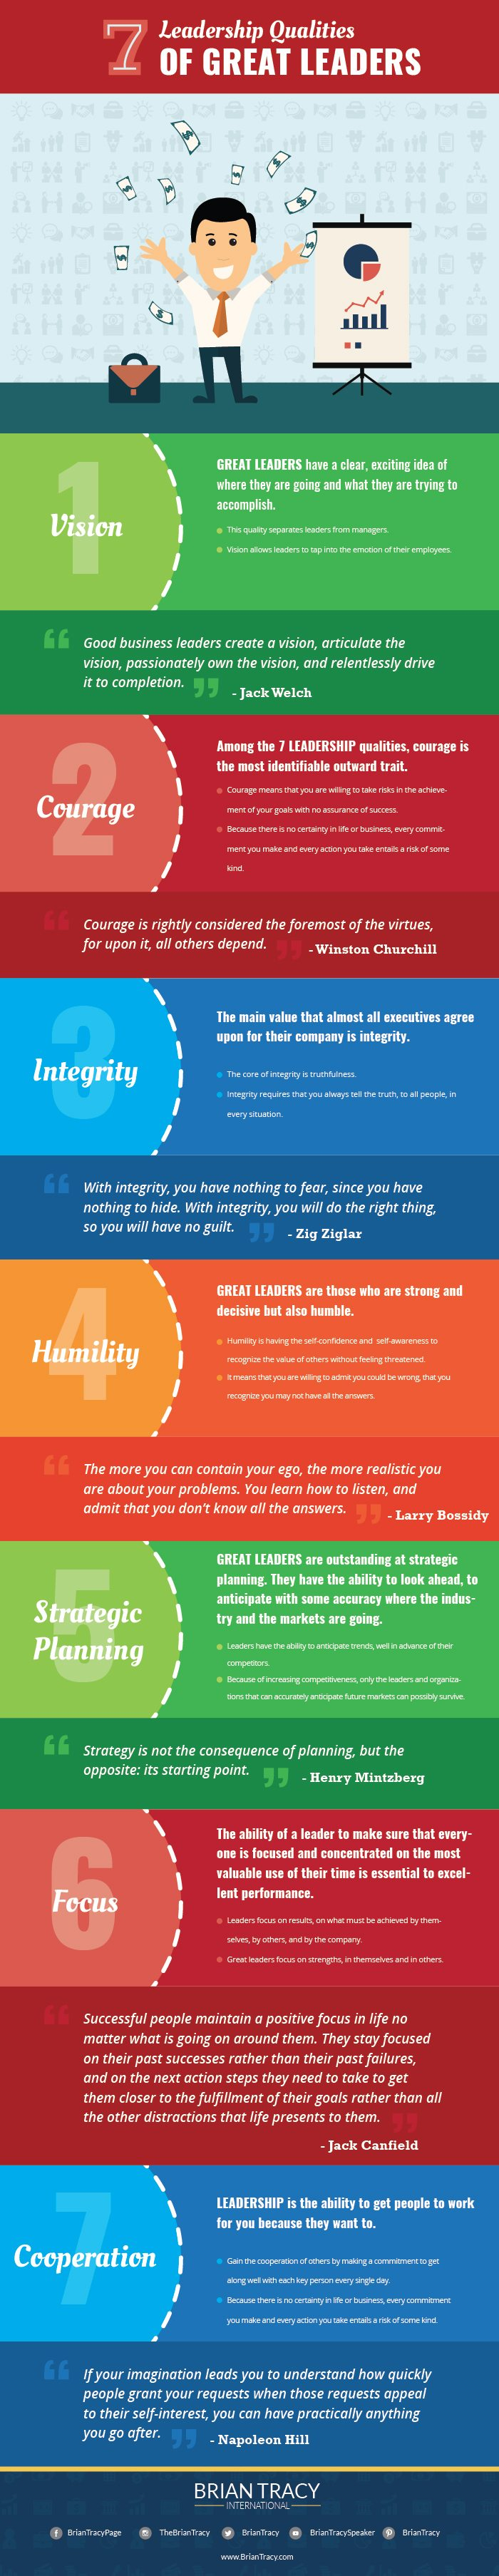 Leadership Qualities  Characteristics Of Good Leaders  Brian Tracy  Leadership Qualities Of Great Leaders Infographic